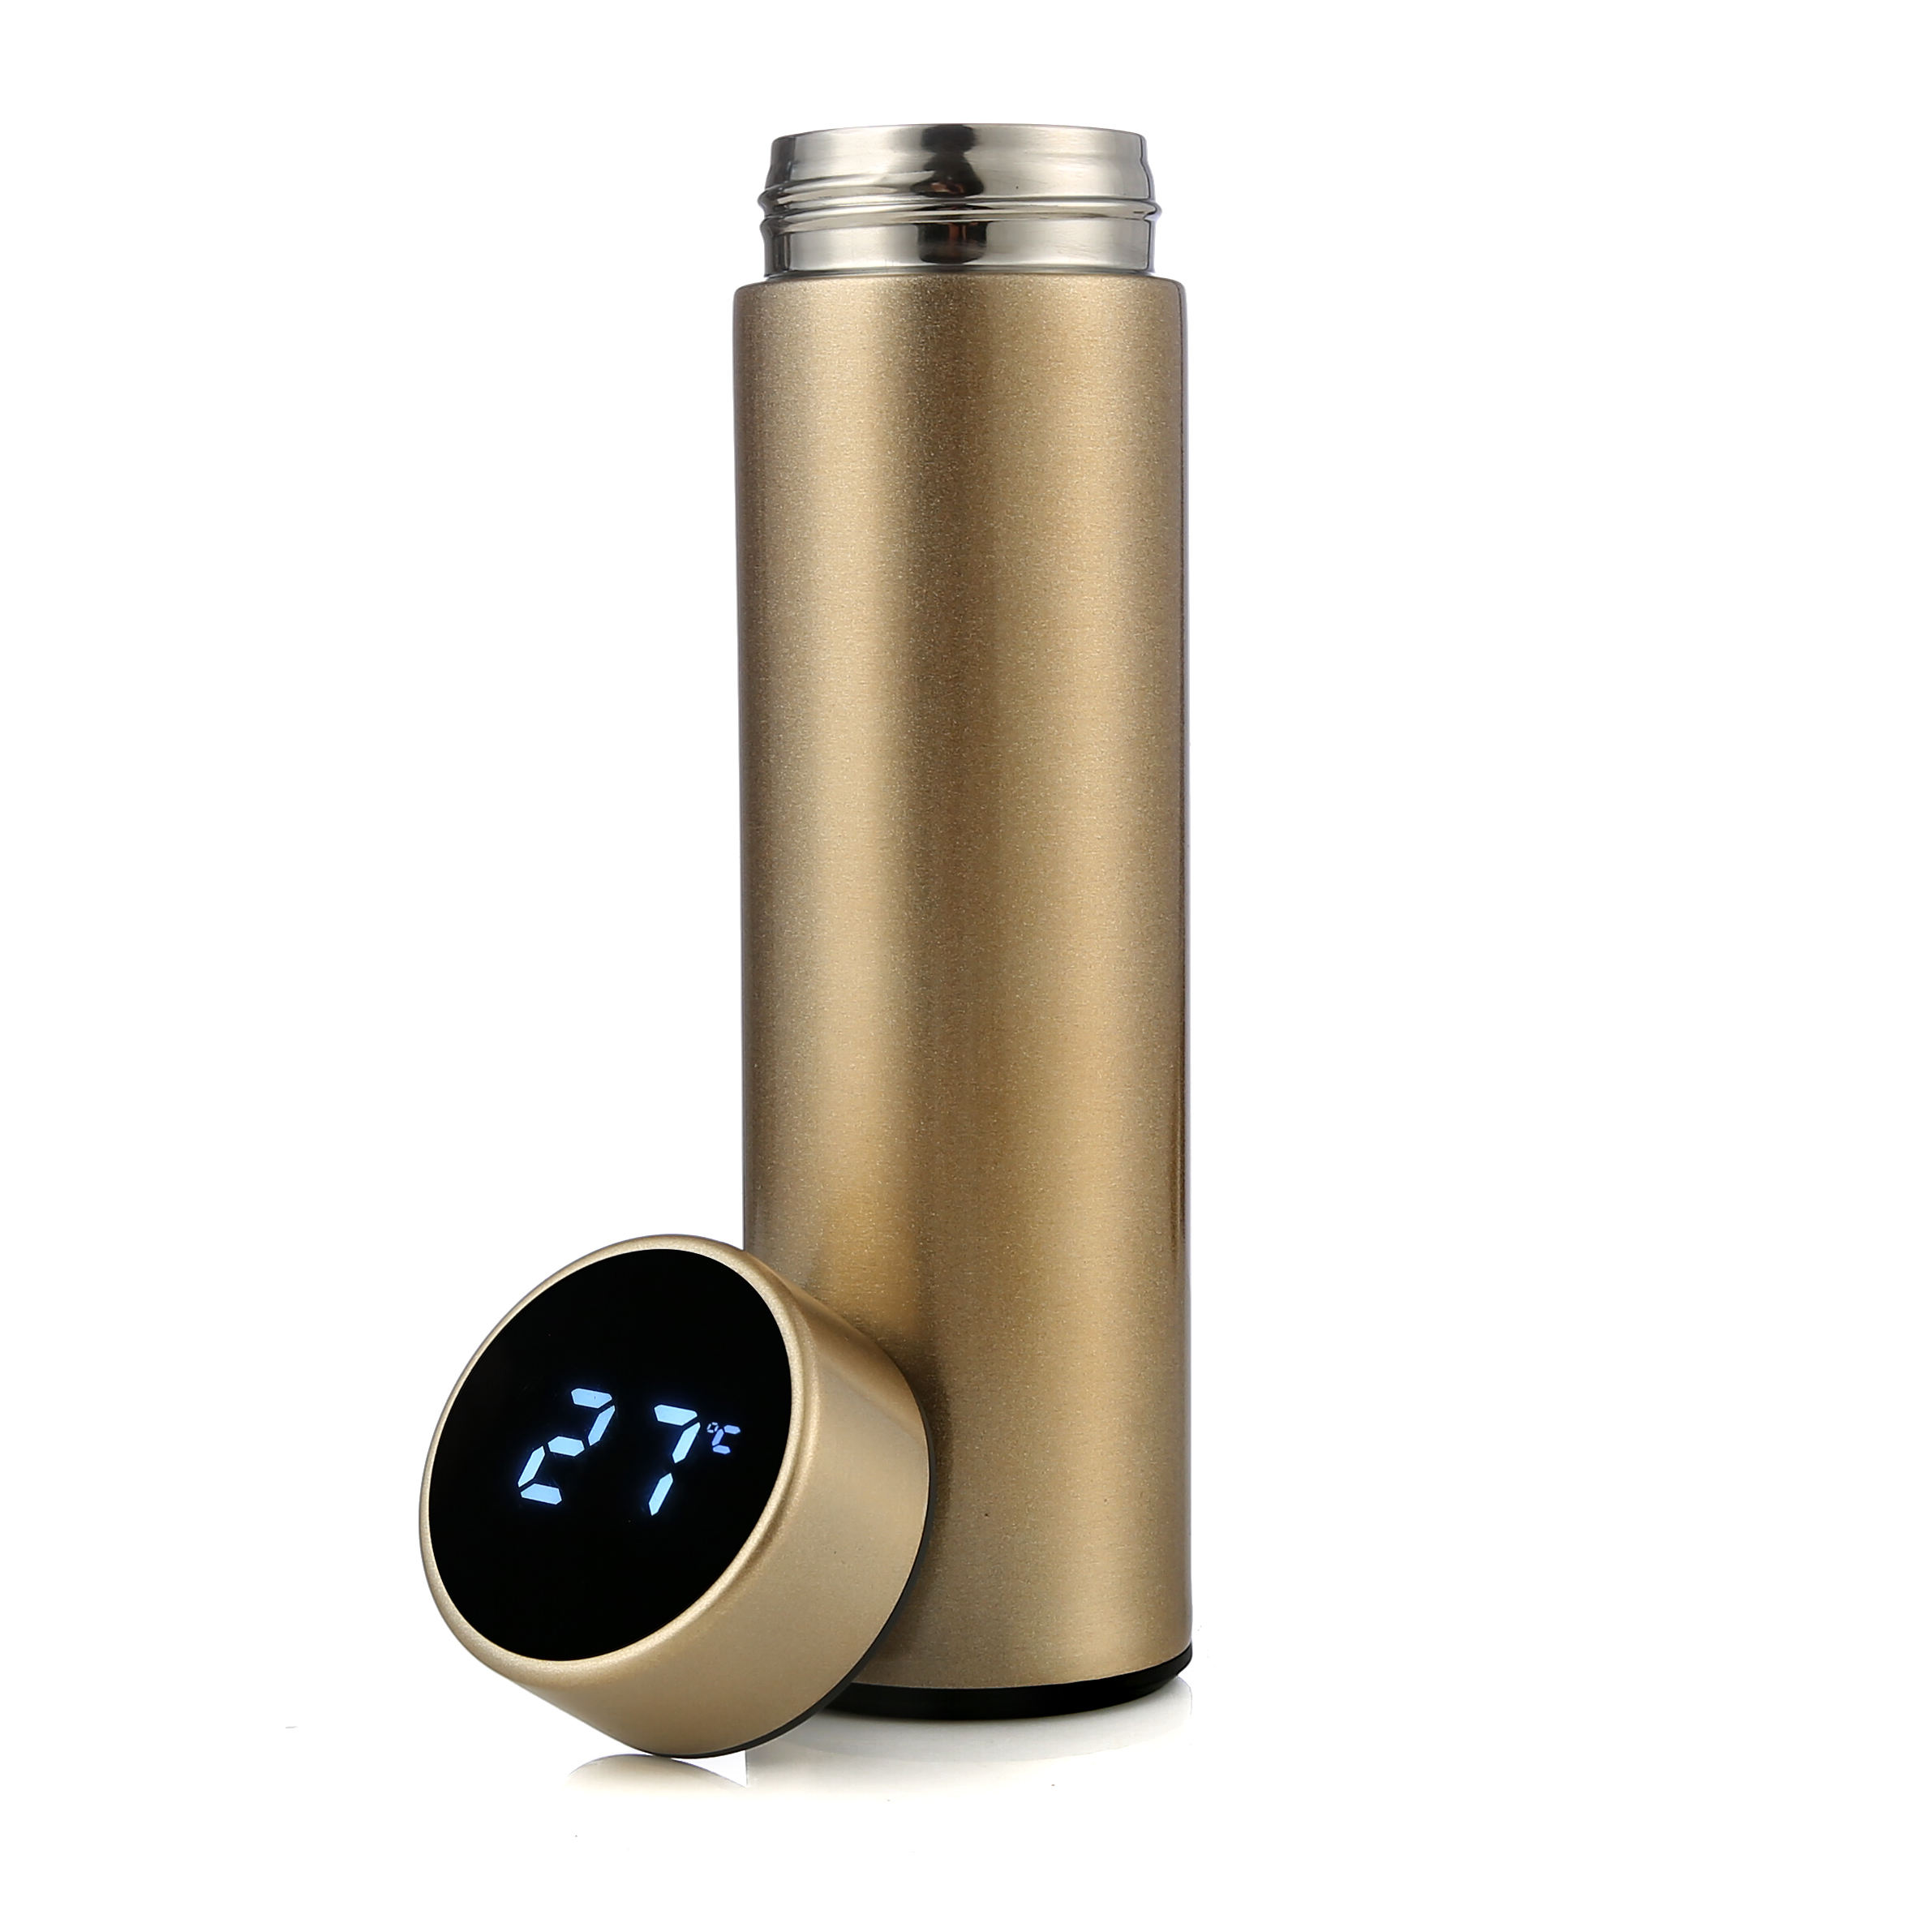 One-Stop Service [ Water Bottle ] Unique Bottles Factory Spot 304 Stainless Steel Intelligent Insulation Water Bottle Outdoor Travel Unique LED Temperature Display Vacuum Flasks